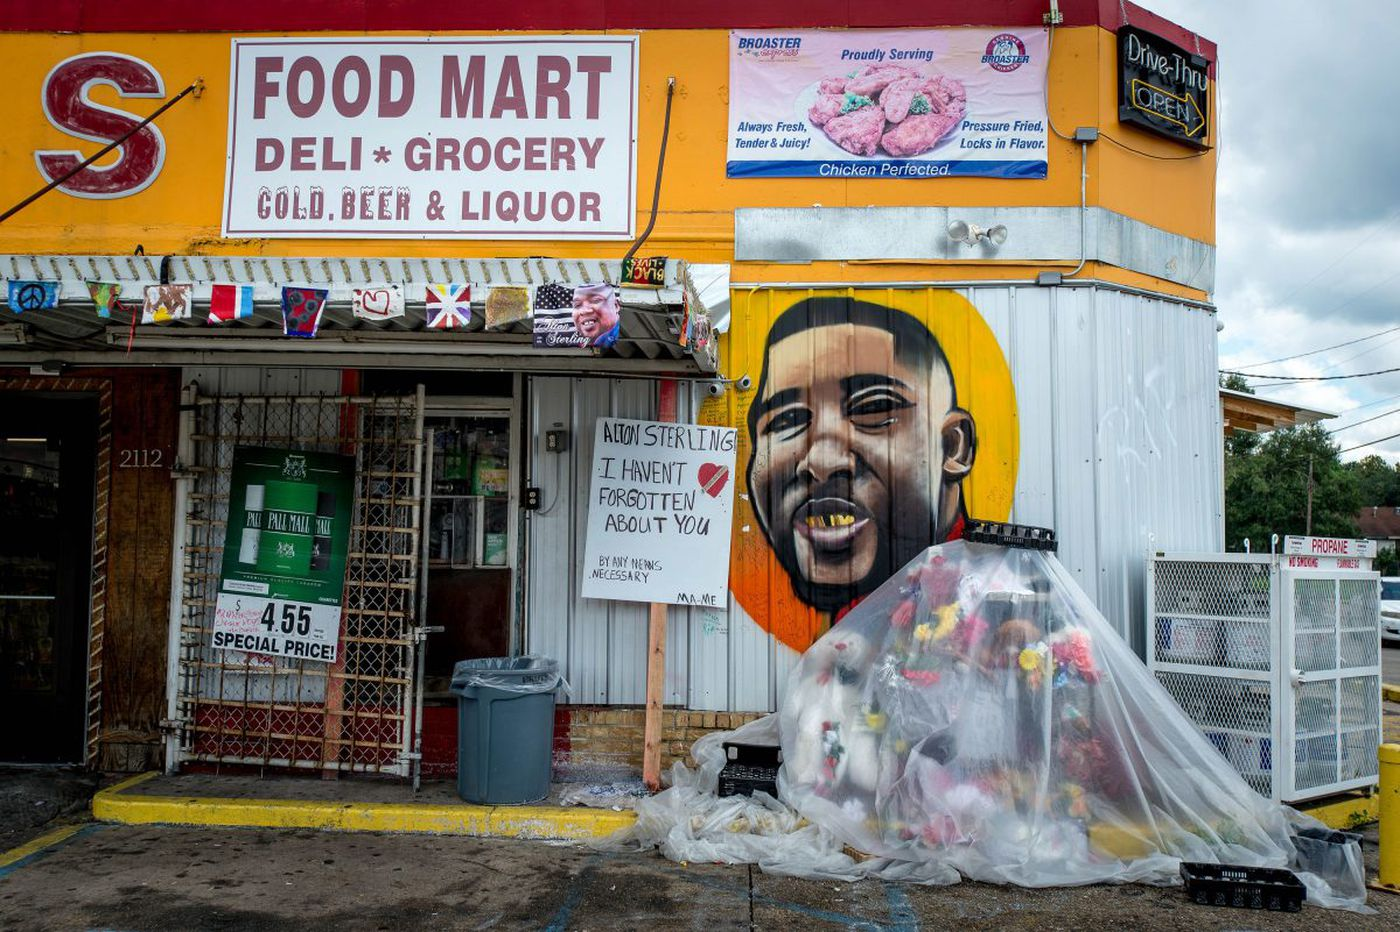 Alton Sterling's black life didn't matter to police or an attorney general   Solomon Jones